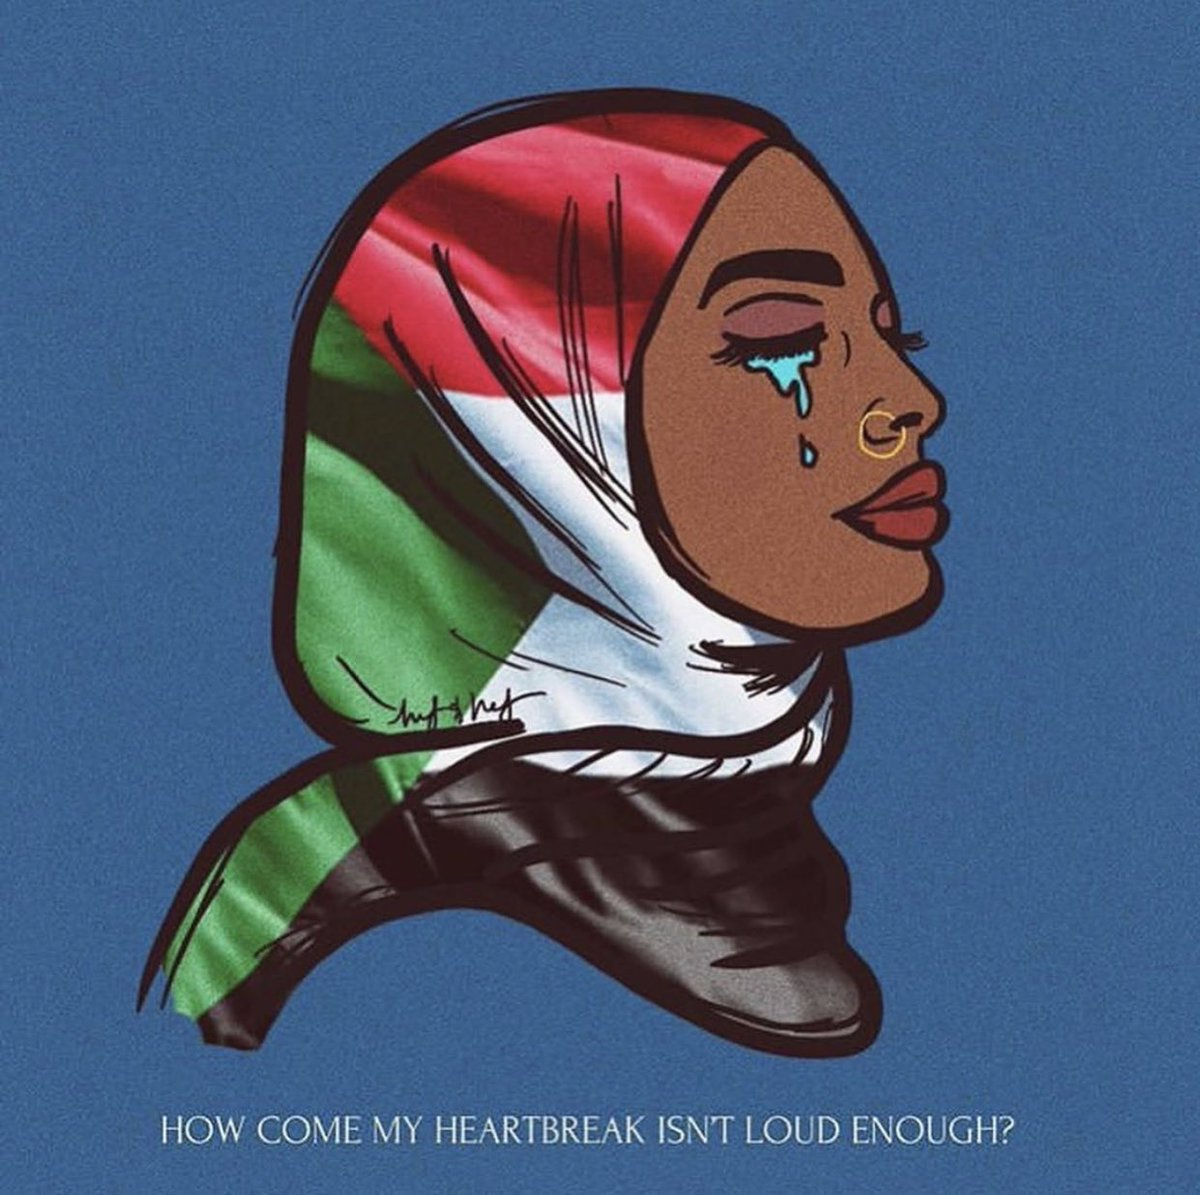 This needs to stop. Those inhuman piece of shit NEEDS TO BE STOPPED !! This is horrendous !! let's spread to the world what is happening in Sudan and pray for them !! PLEASE !! #BlueWithSudan #PrayForSudan <br>http://pic.twitter.com/tIhIXZC4JL